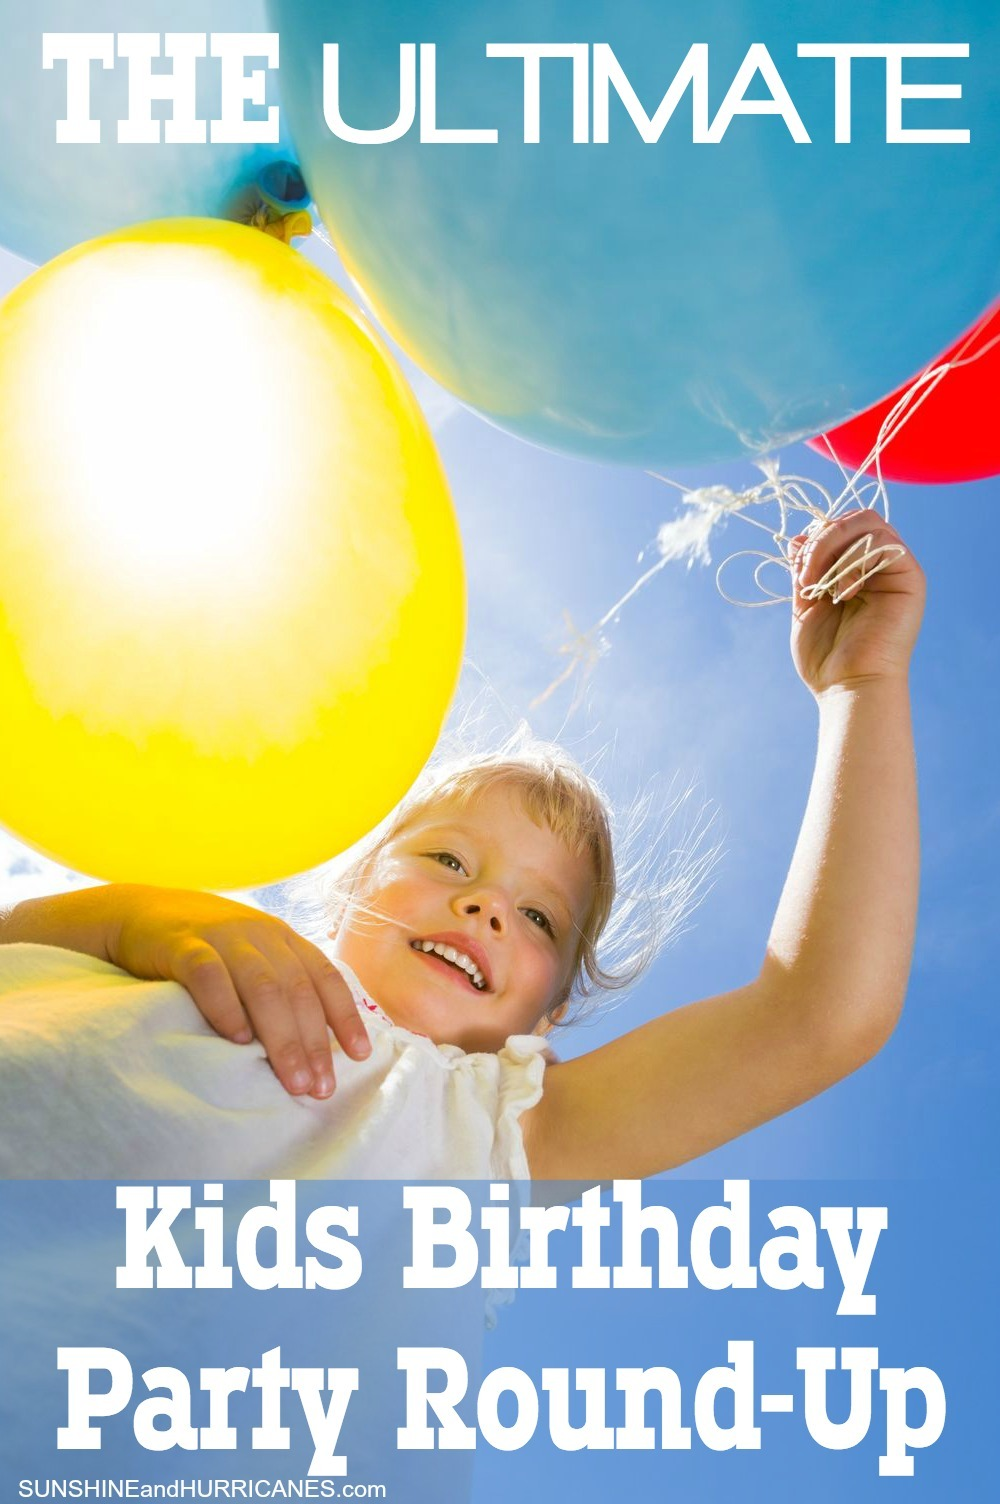 Looking for a one stop solution to ALL your Birthday party planning? We've got everything you could need and more, from party hacks and goody bag alternatives, to birthday printables, games and even thank you notes for afterward. This will be the easiest Birthday party you ever pulled together. The Ultimate Kids Birthday Party Round-Up. SunshineandHurricanes.com